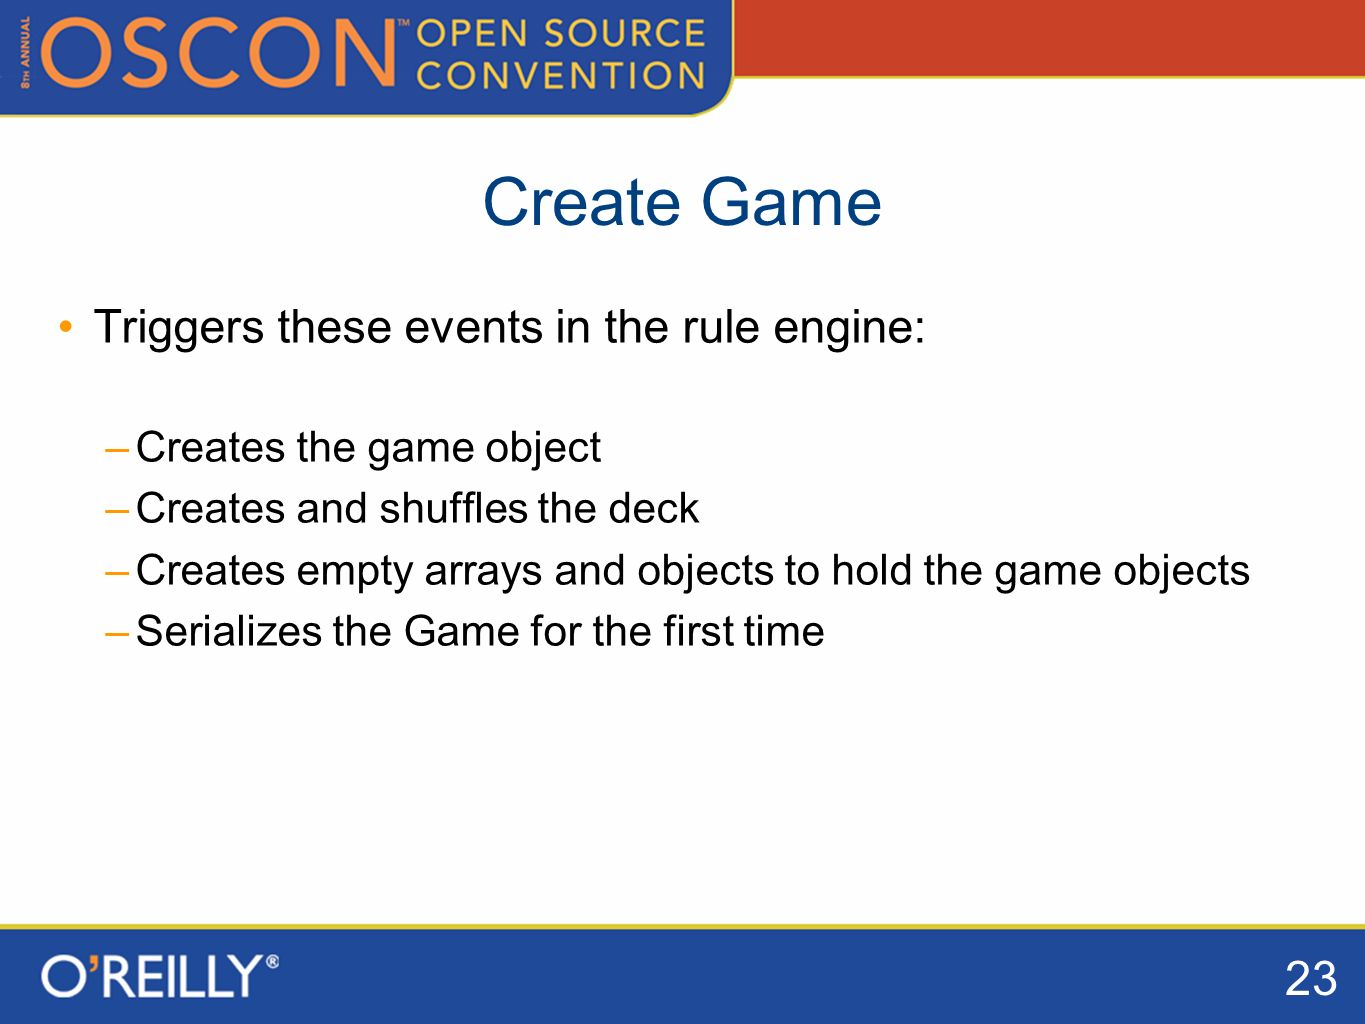 23 Create Game Triggers these events in the rule engine: –Creates the game object –Creates and shuffles the deck –Creates empty arrays and objects to hold the game objects –Serializes the Game for the first time